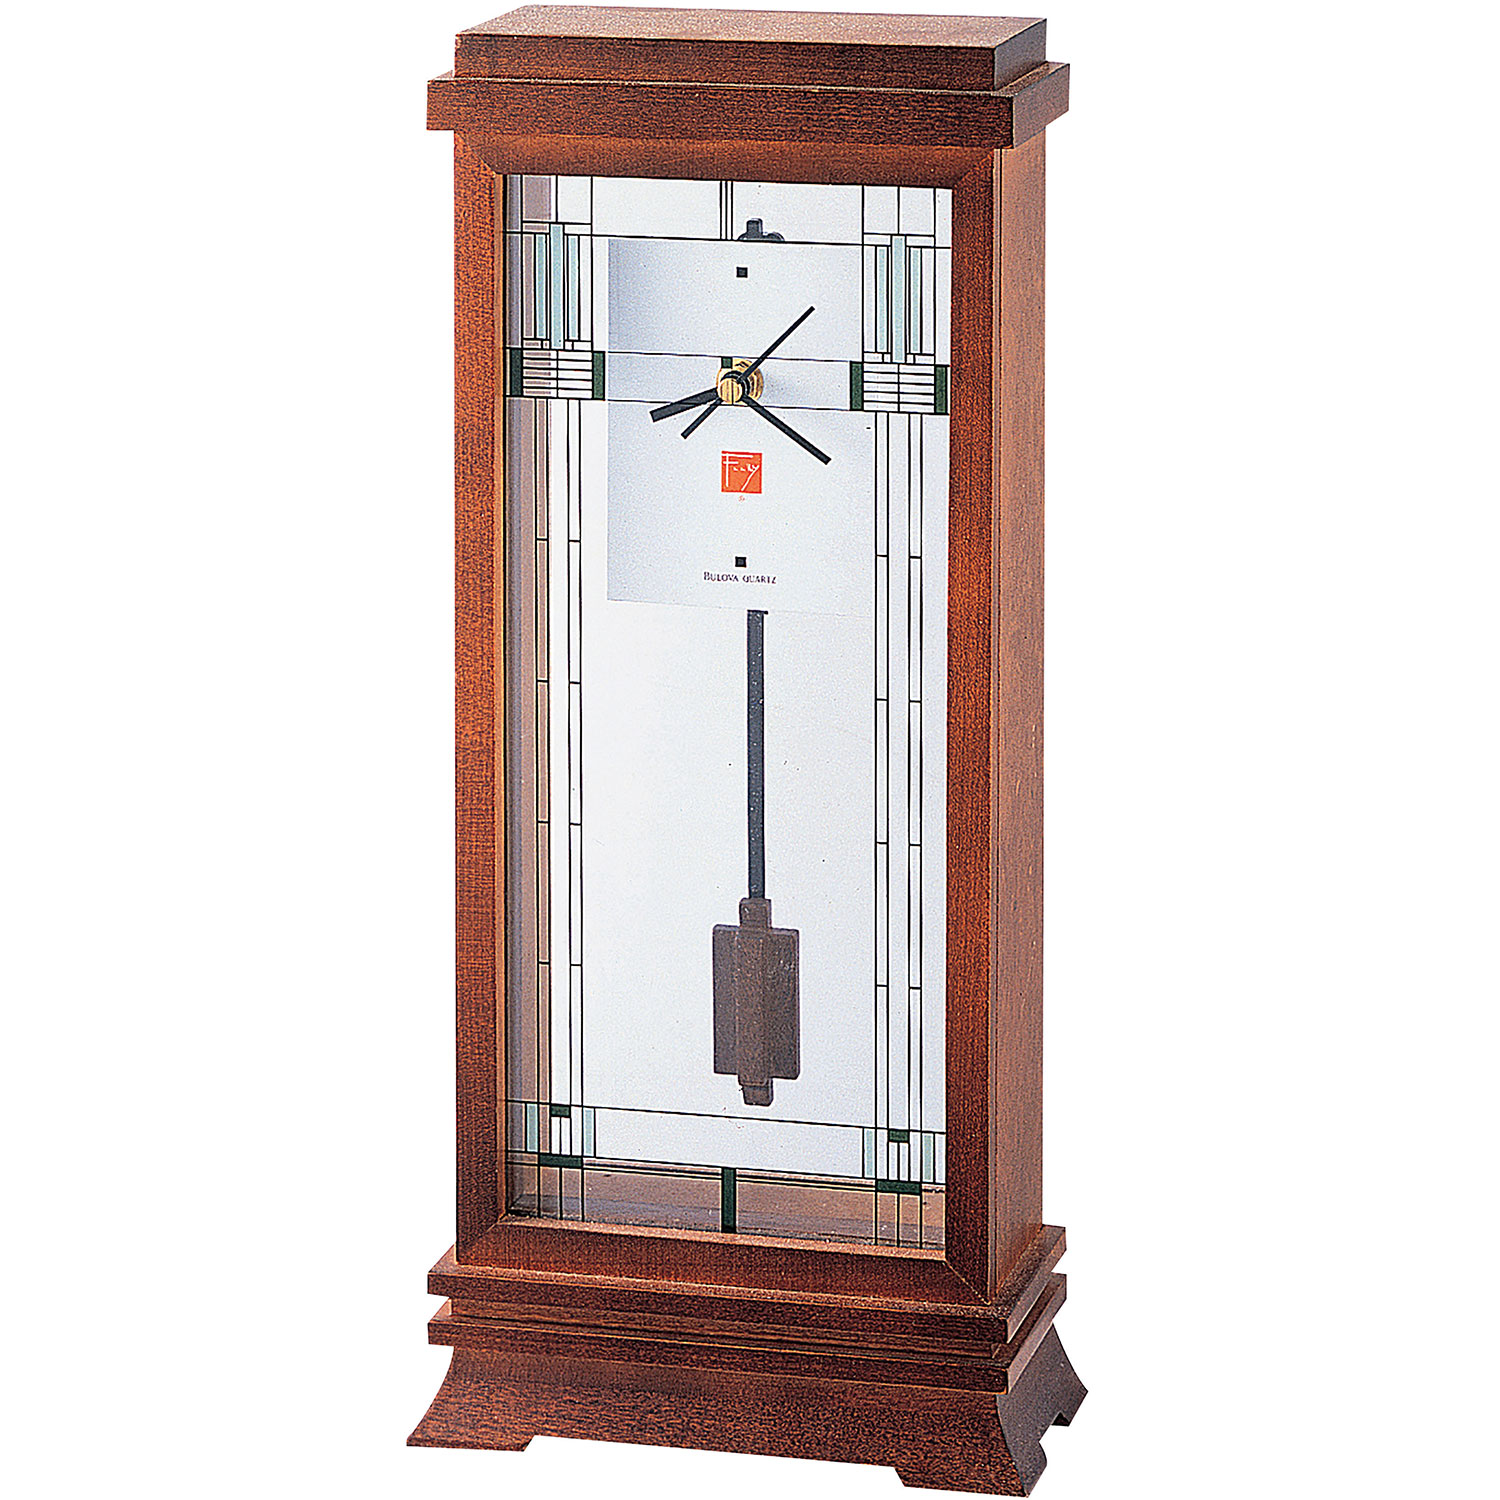 Bulova Mantel Clock | Bulova Pendulum Wall Clock | Mantel Chime Clocks